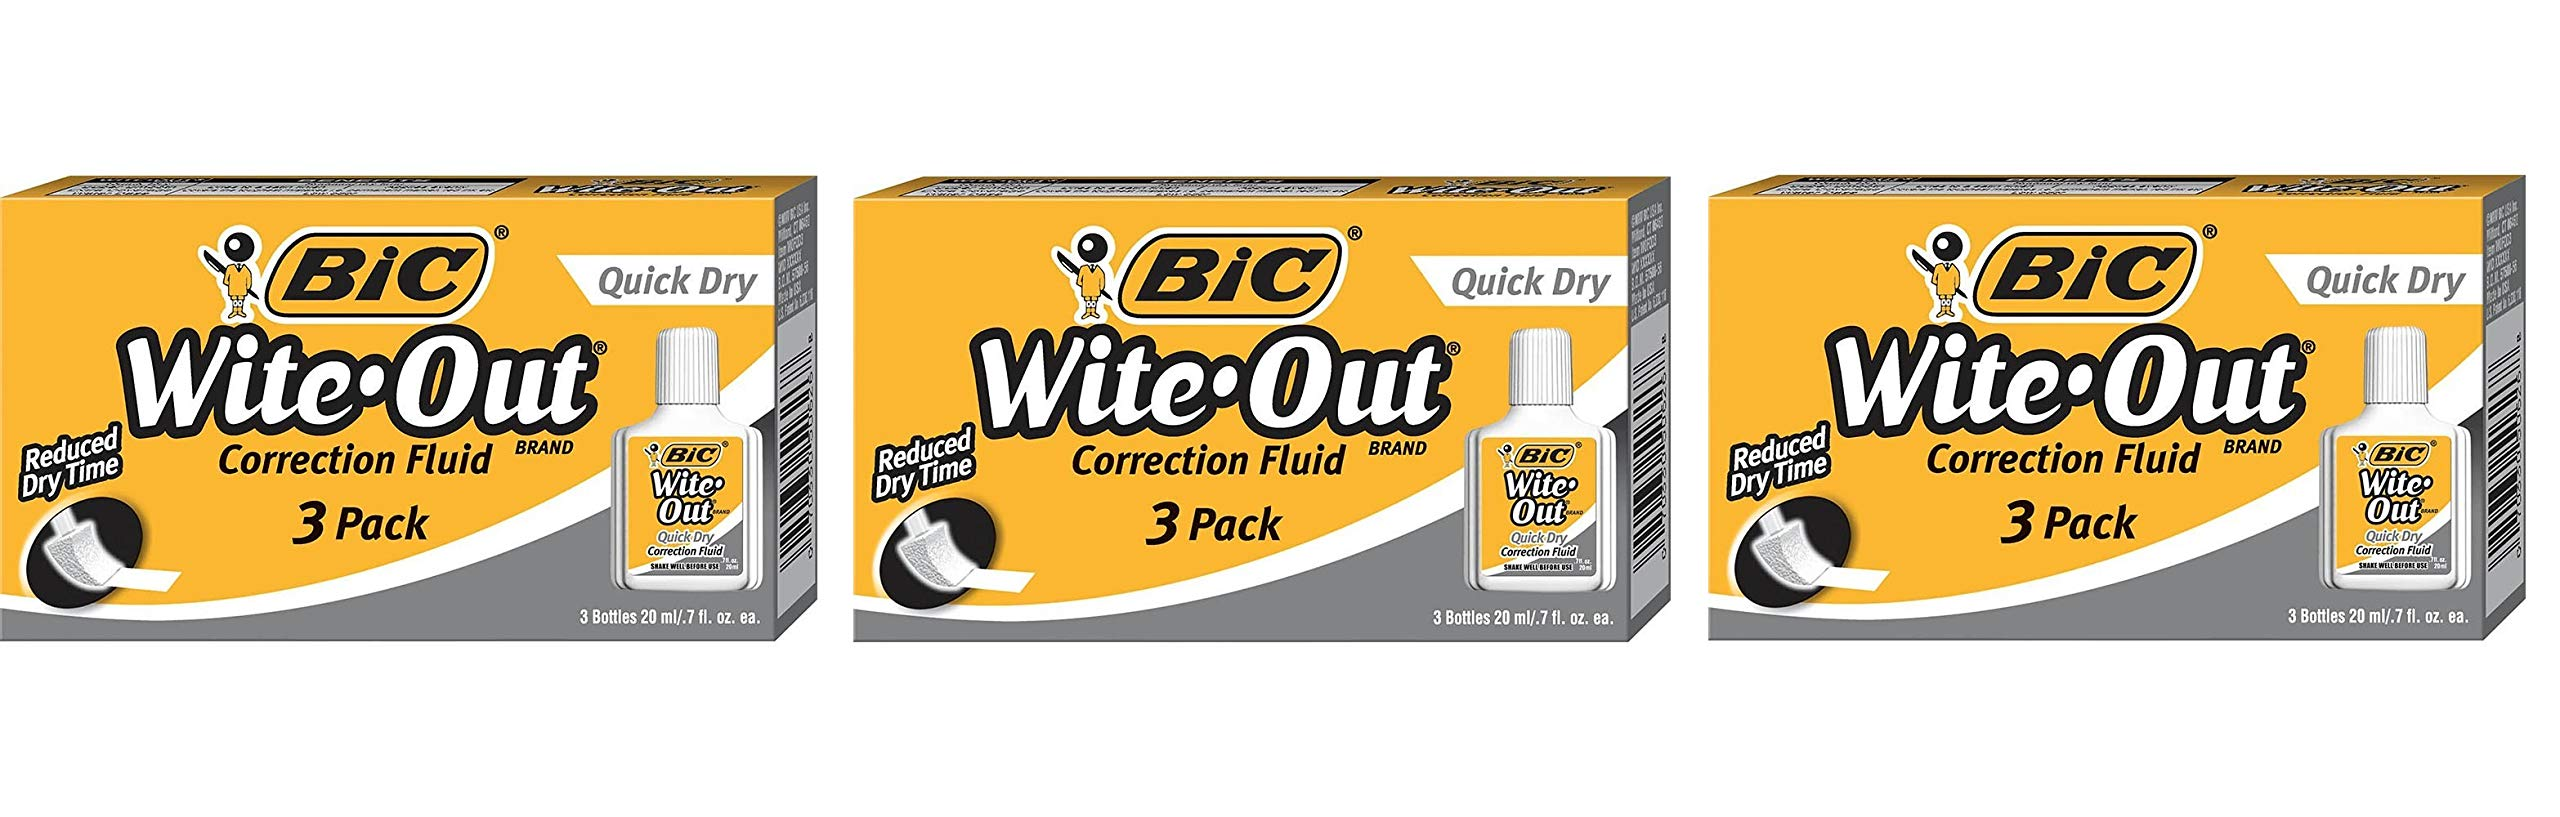 BIC Wite-Out Quick Dry Correction Fluid 20ml Bottle, 3 Pack (3 Bottles)